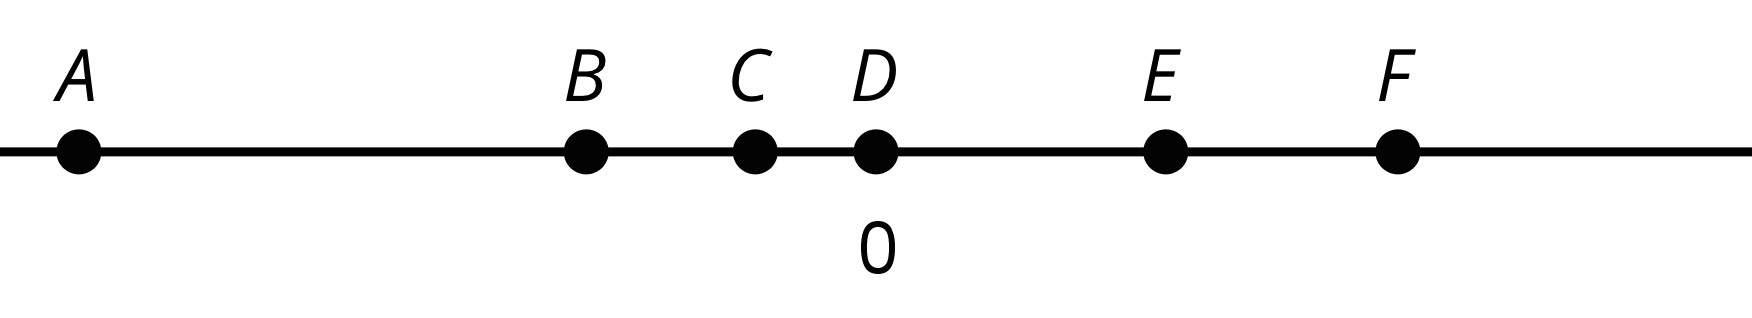 A number line with the number 0 indicated in the middle. Points A, B, C, D, E and F appear along the number line, with point D indicated at 0. Points A and F are located on opposite sides of point D with point A far to the left and point F far to the right of point D with Point F being closer to point D than point A. Point B is located less than halfway between point A and point D. Point C is located about halfway between the points B and D with it being closer to point D. Point E is located about halfway between points D and F with it being closer to point F. Points B and E are located about an equal distance from point D.